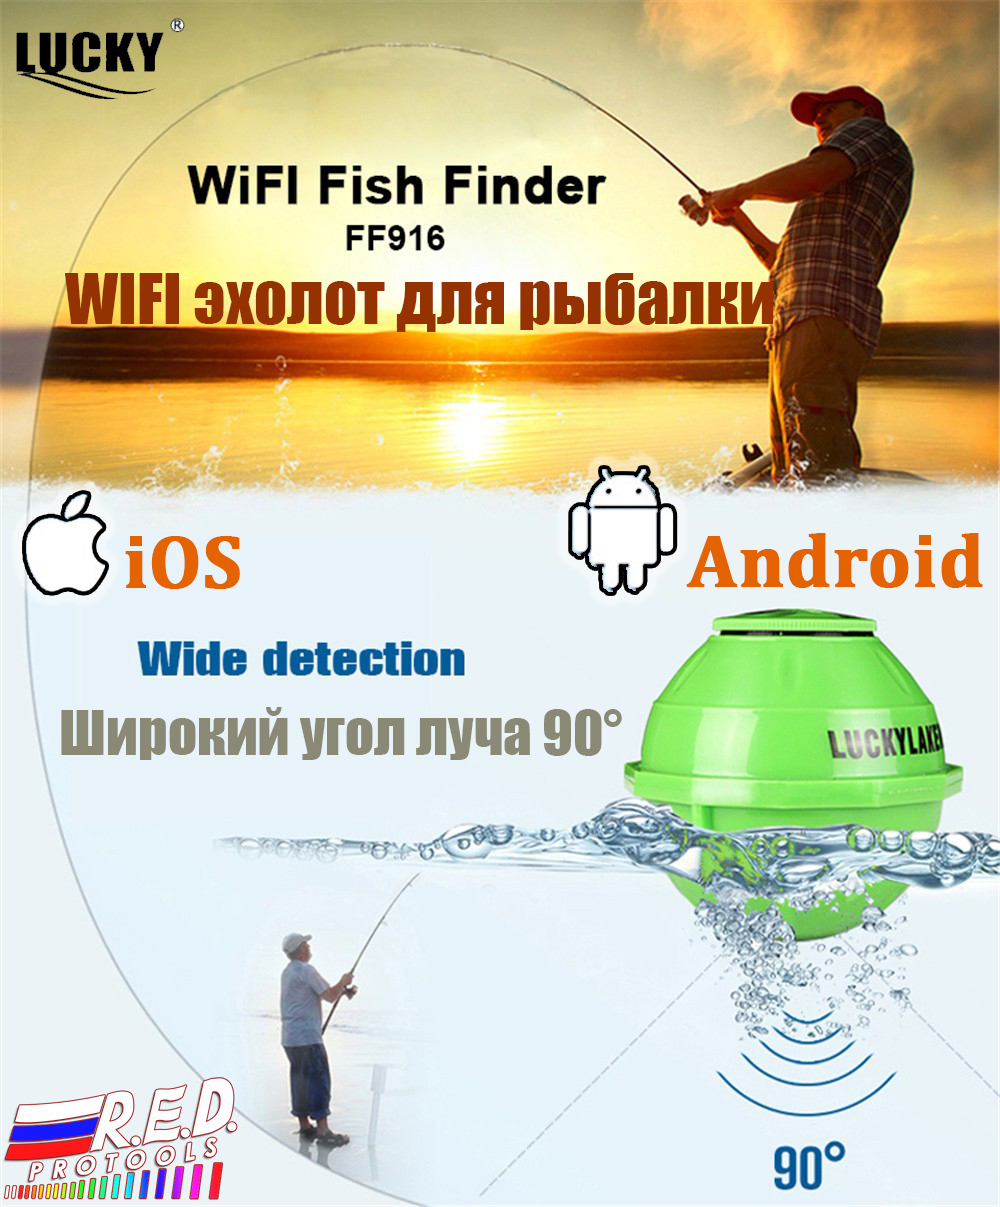 Lucky FF 916 WI FI fish finder Sonar Wireless WIFI 50 M Operation Range Rechargeable Lithuim